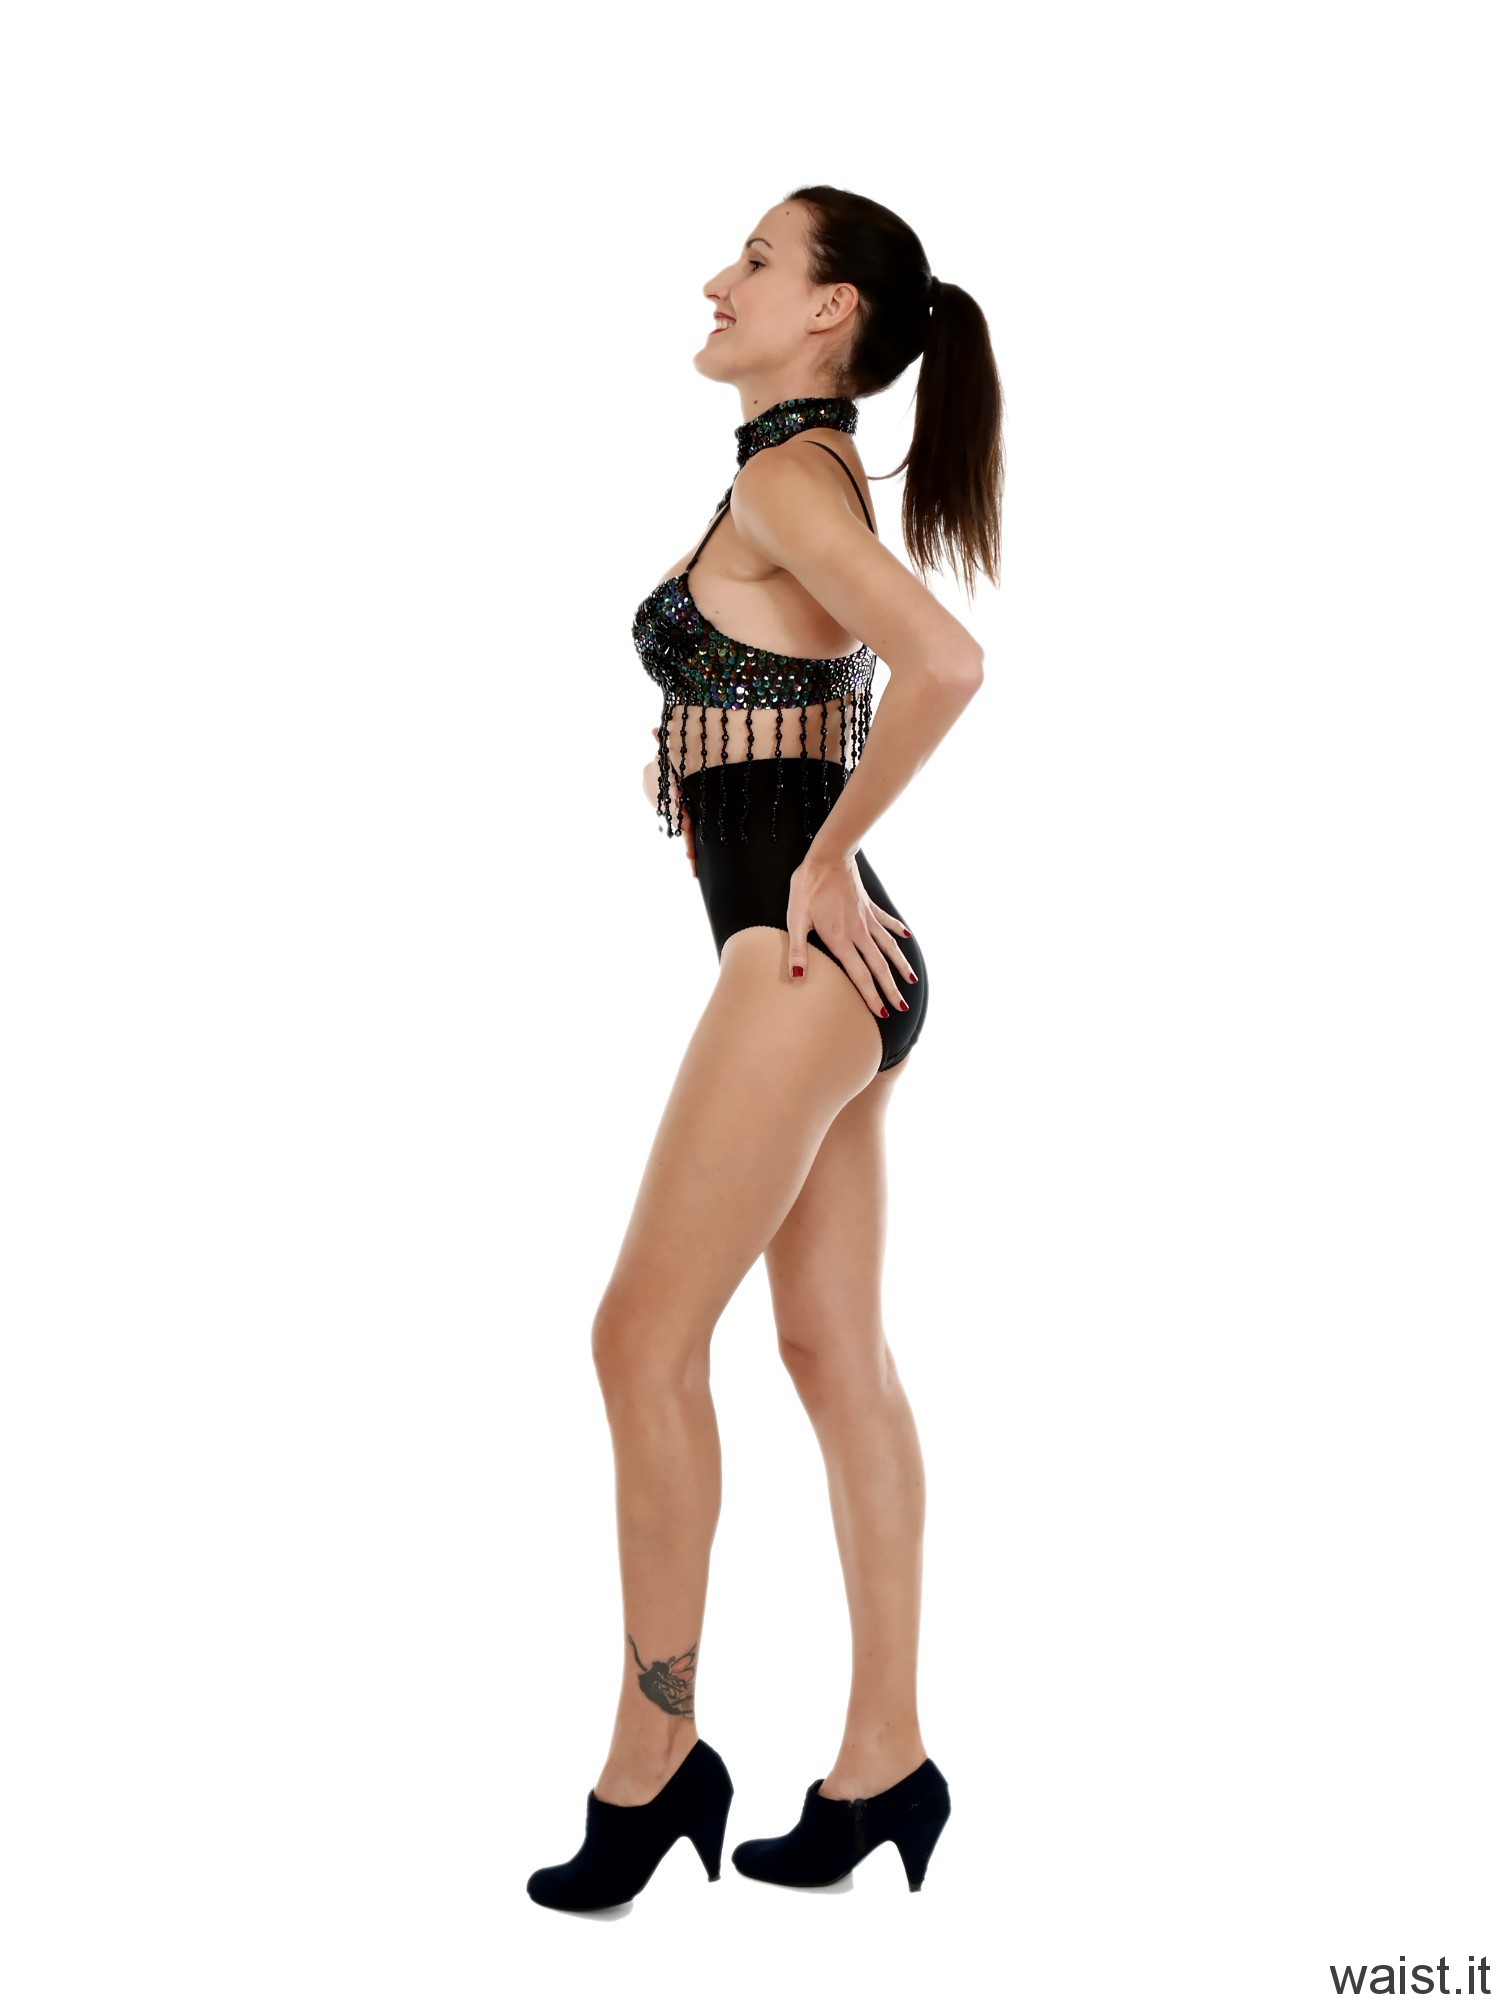 2016-11-20 MissGlamour wearing Chinese dance top and pocket girdle worn as hotpants